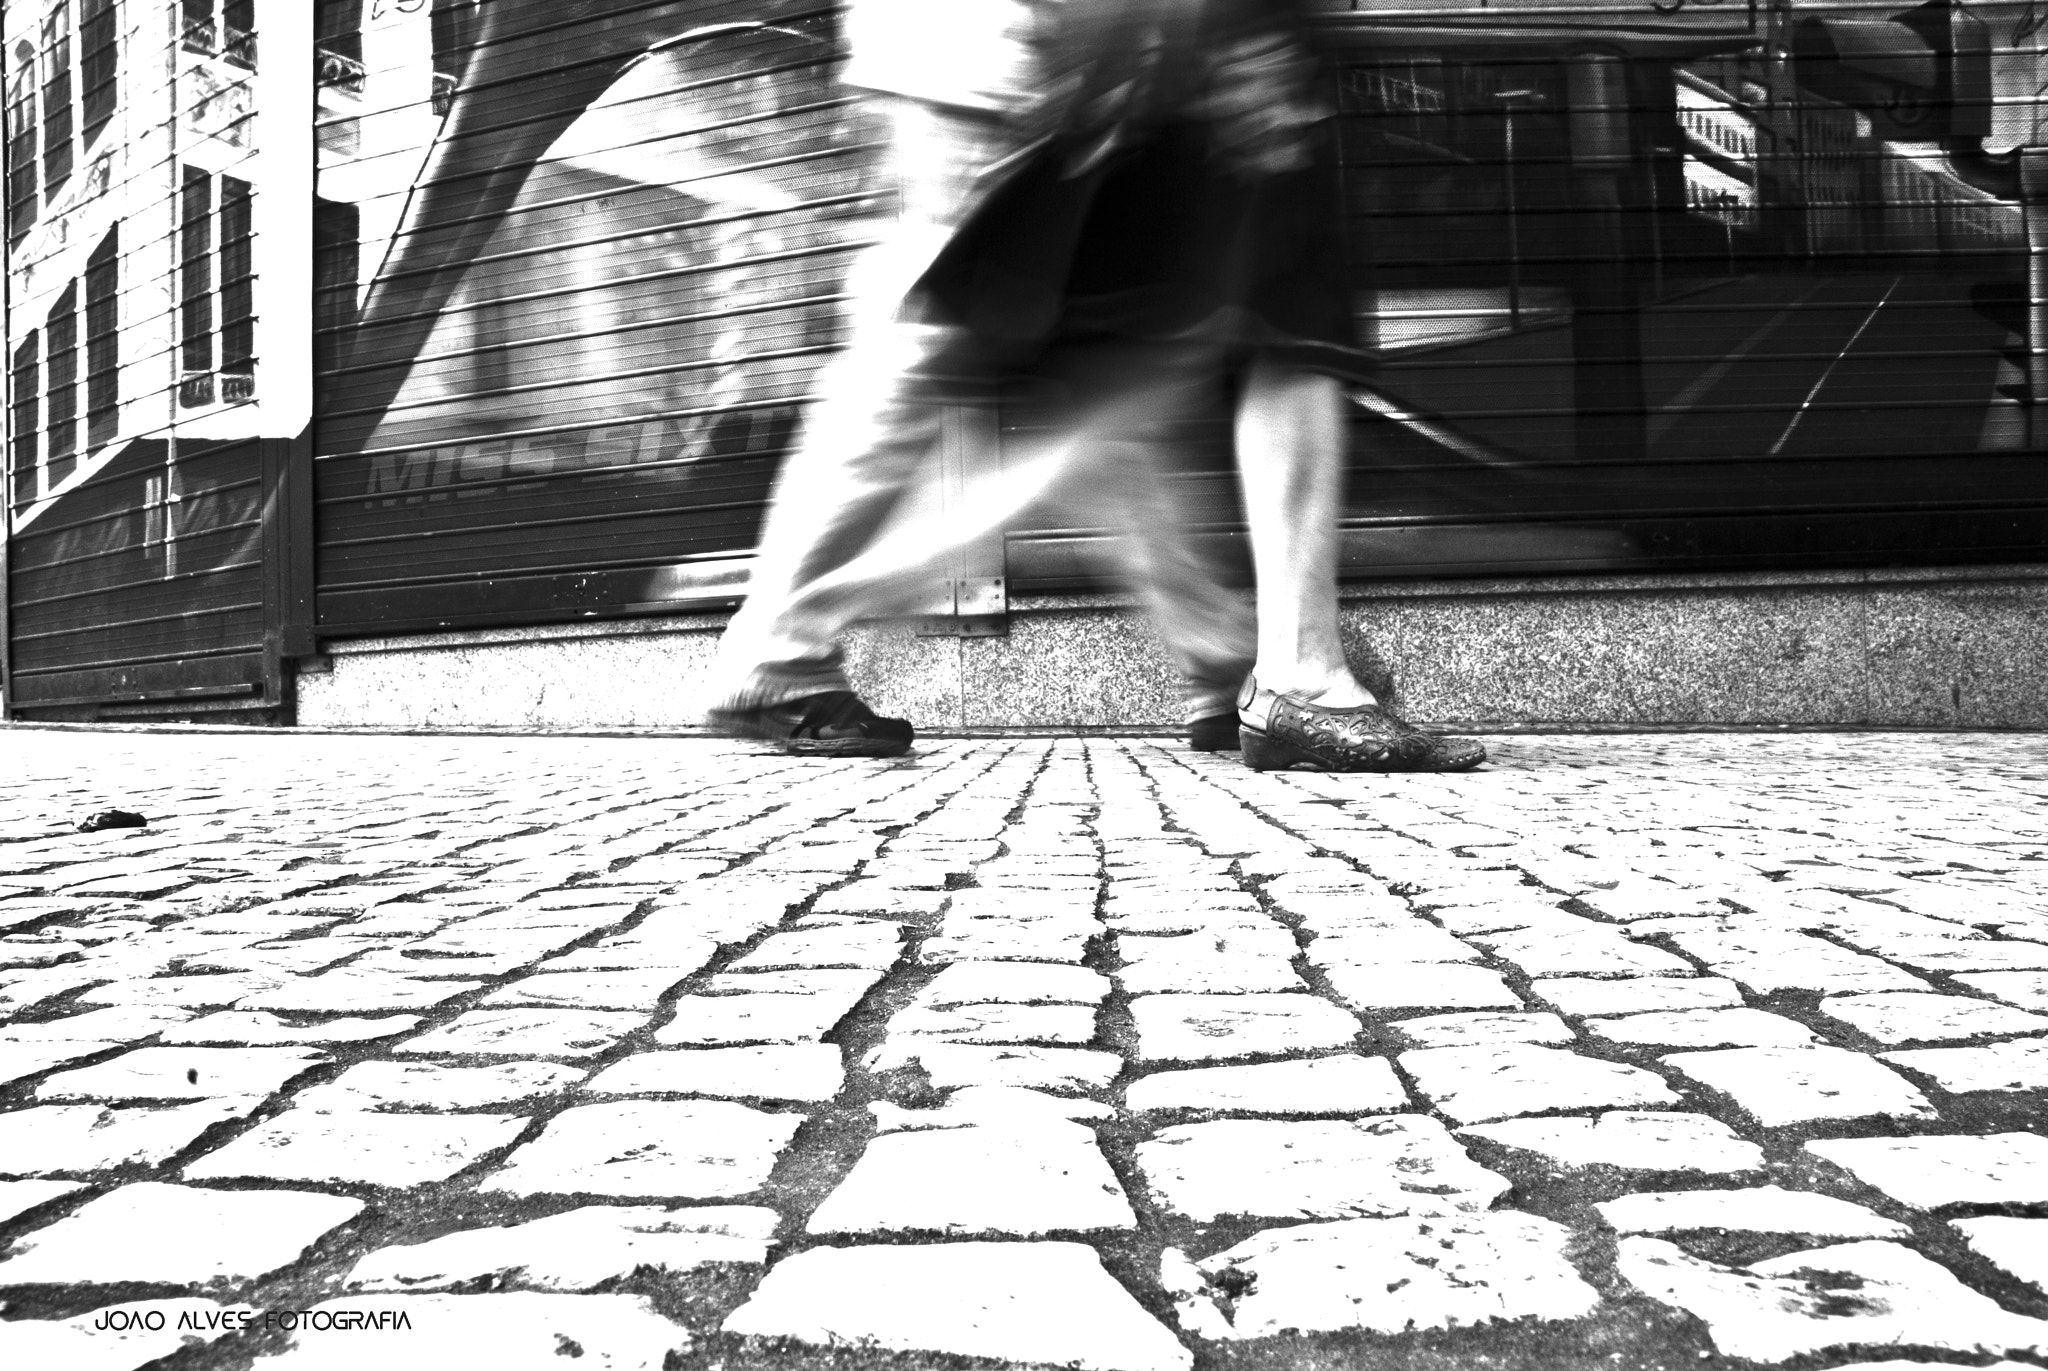 Photograph Walking in the street by Joao Alves on 500px